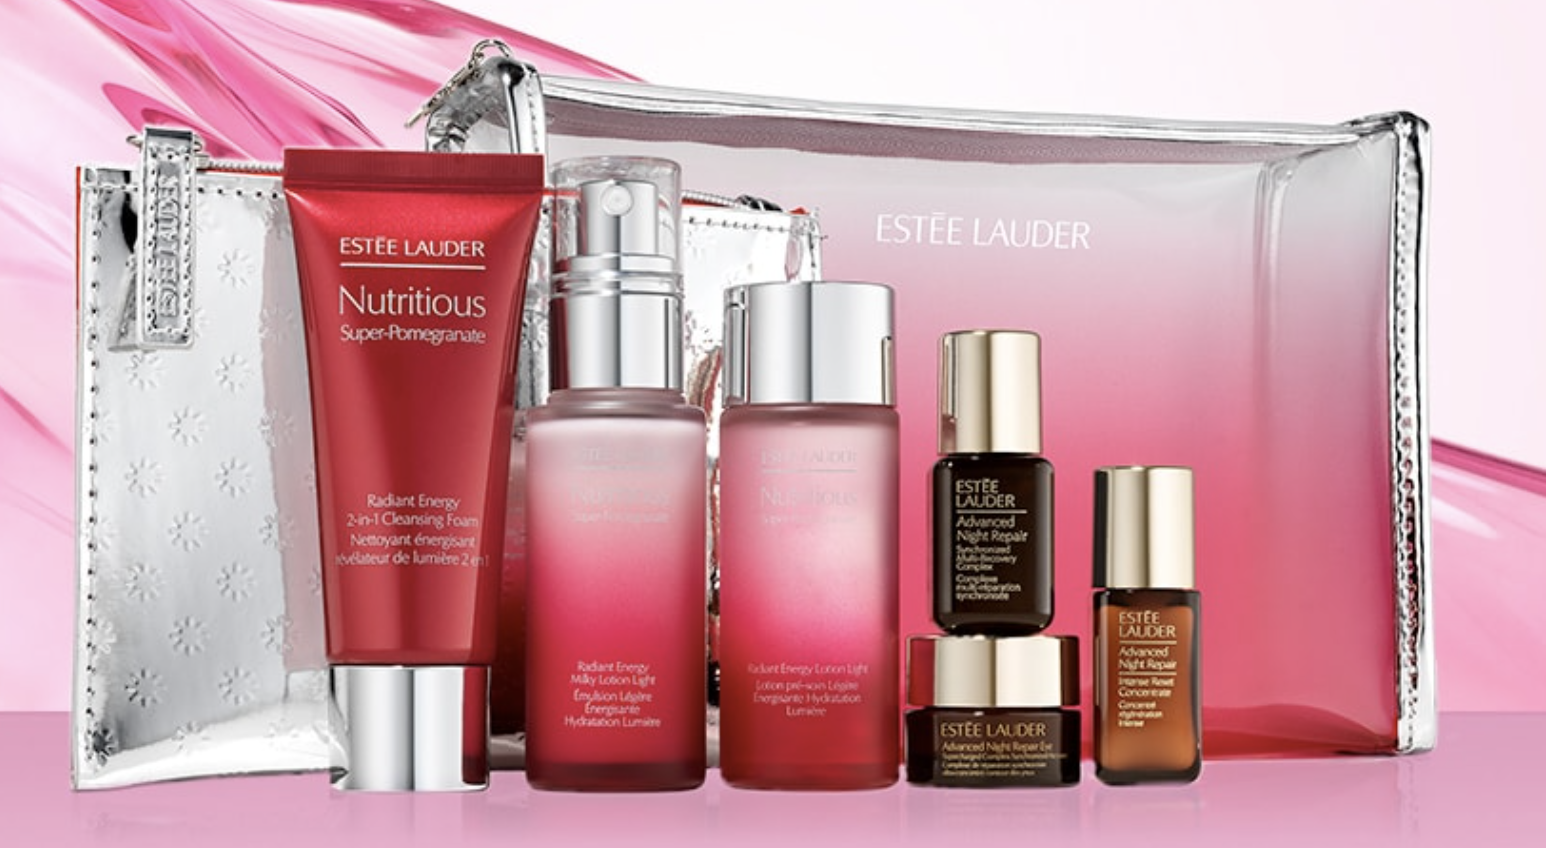 Estee Lauder: Free full-size item with purchase